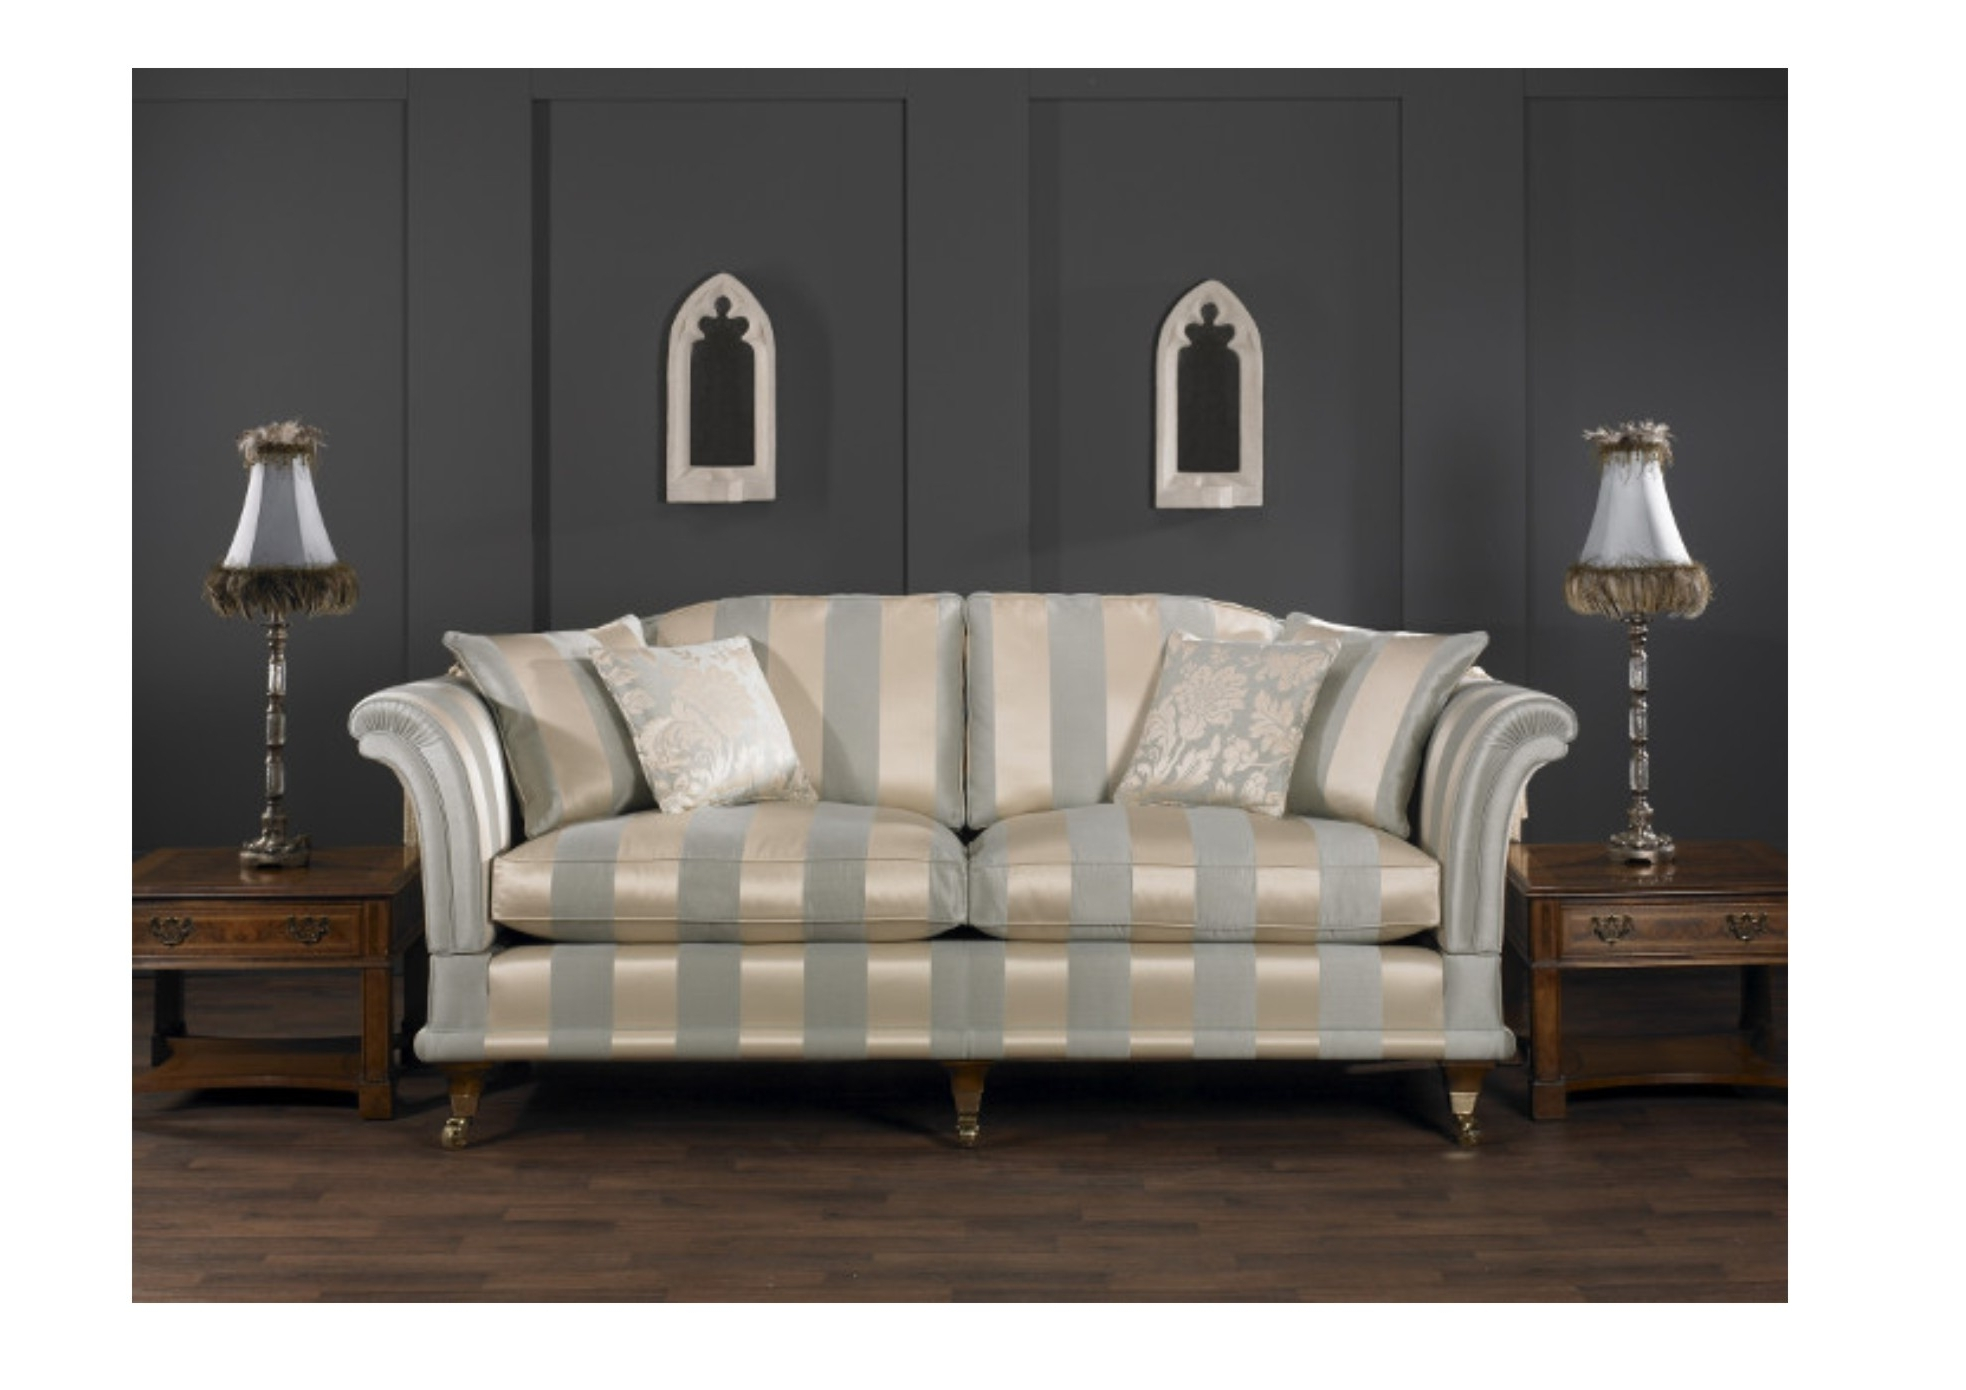 Most Current Florence Large Sofa – Upholstery Large Small Medium Sofa Extensive Within Florence Medium Sofas (View 11 of 15)